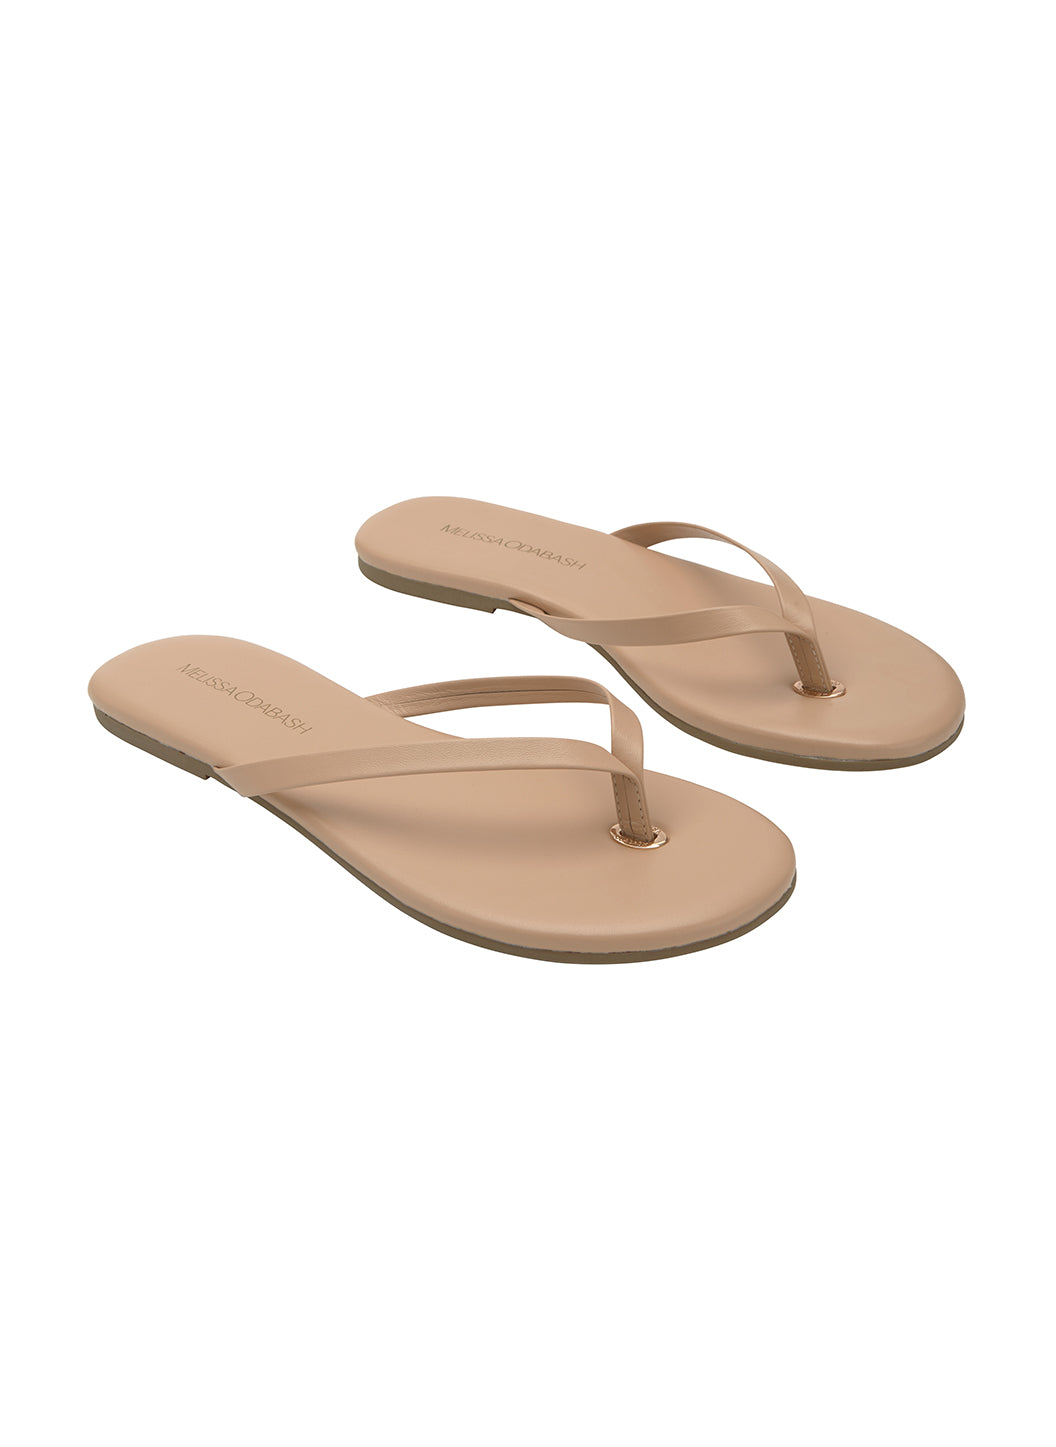 Leather Flip Flops Nude